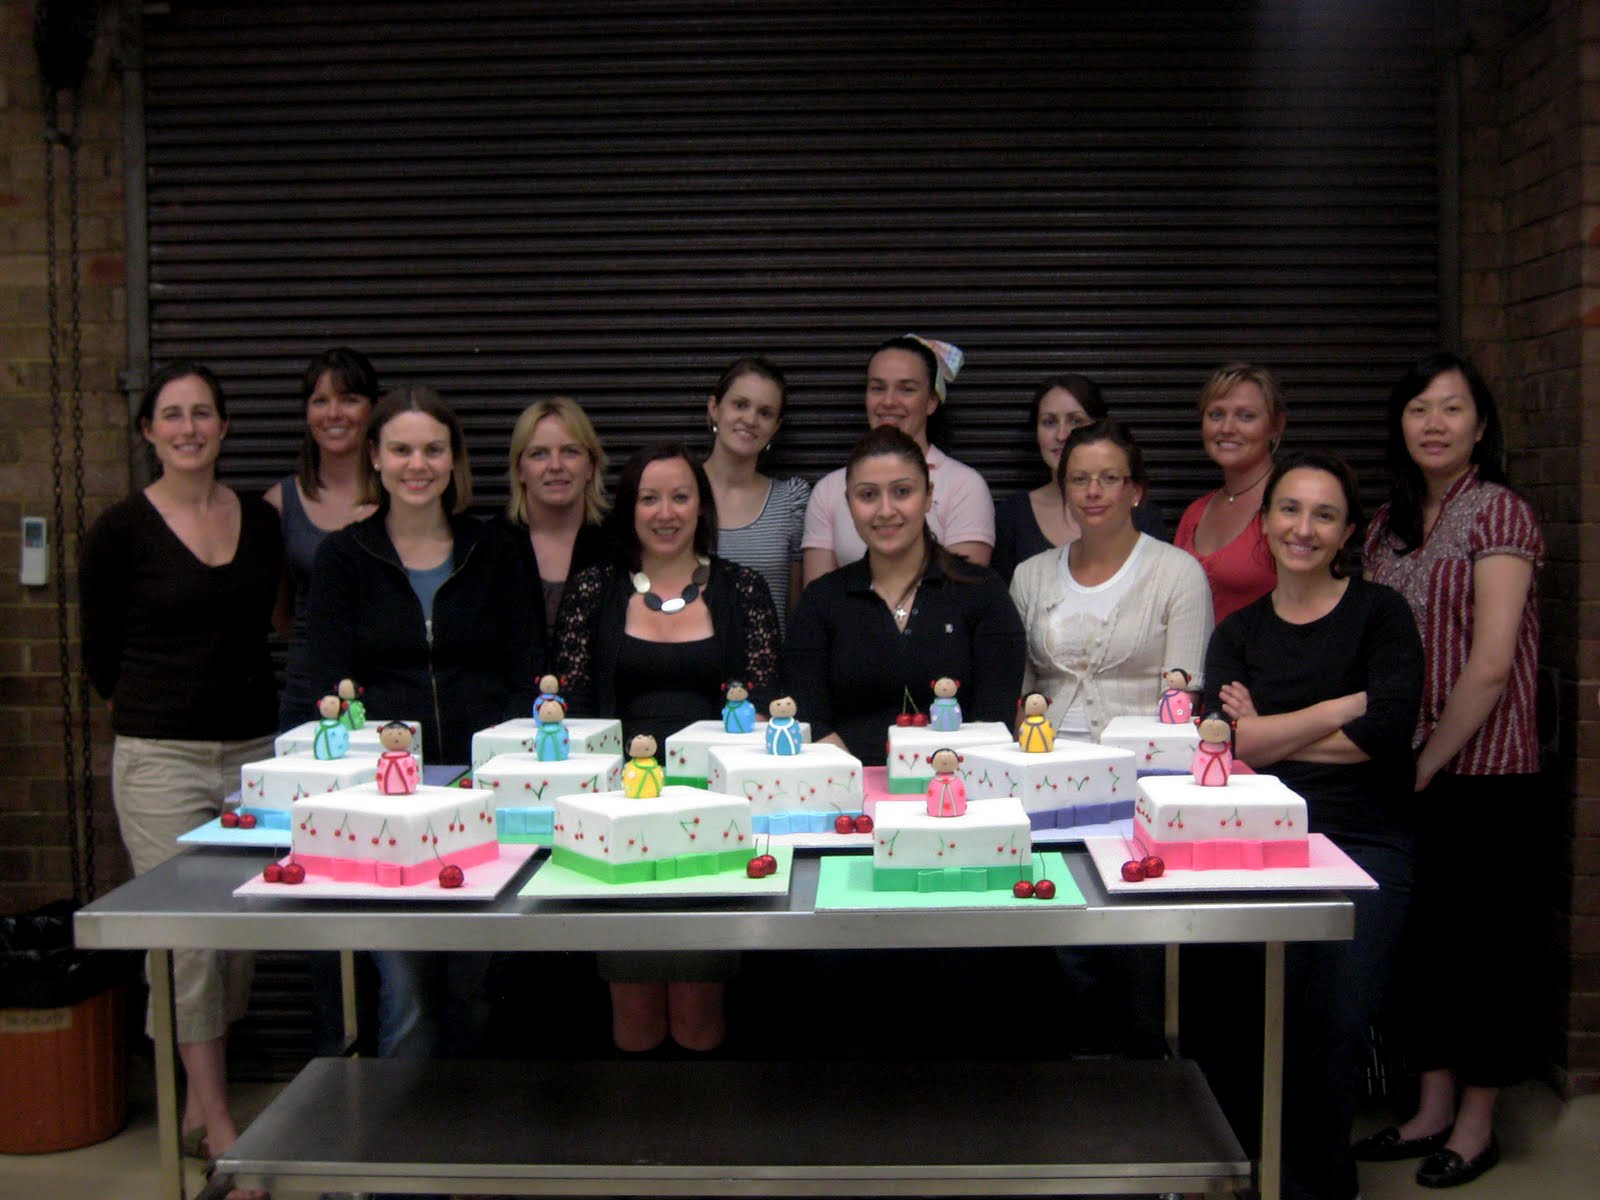 Cake Decorating Classes Central West Nsw : PLANET CAKE UPDATE: New Basics 102 Workshop